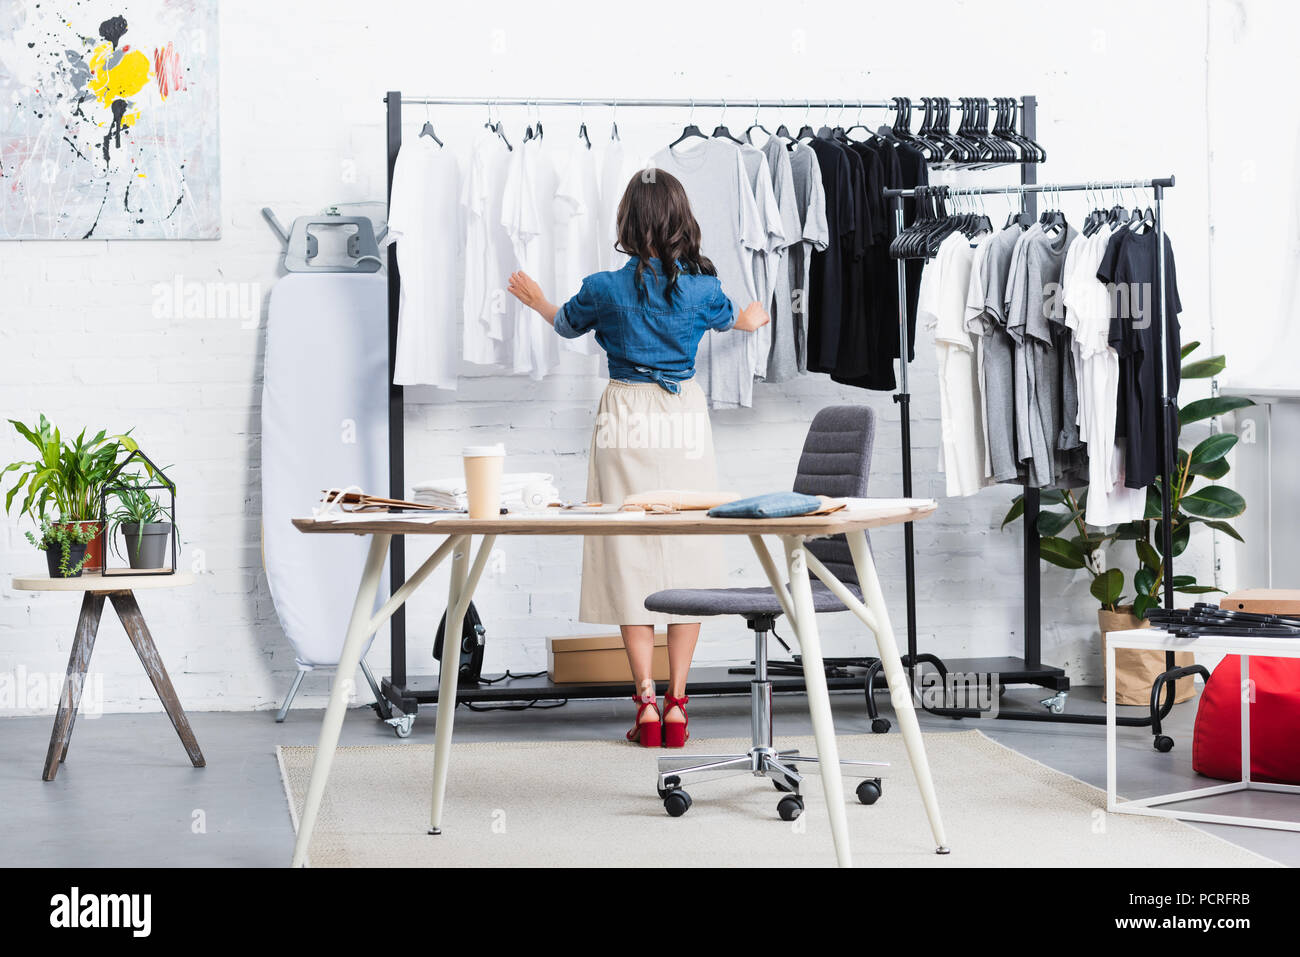 Rear View Of Female Designer Taking Black T Shirt From Hanger In